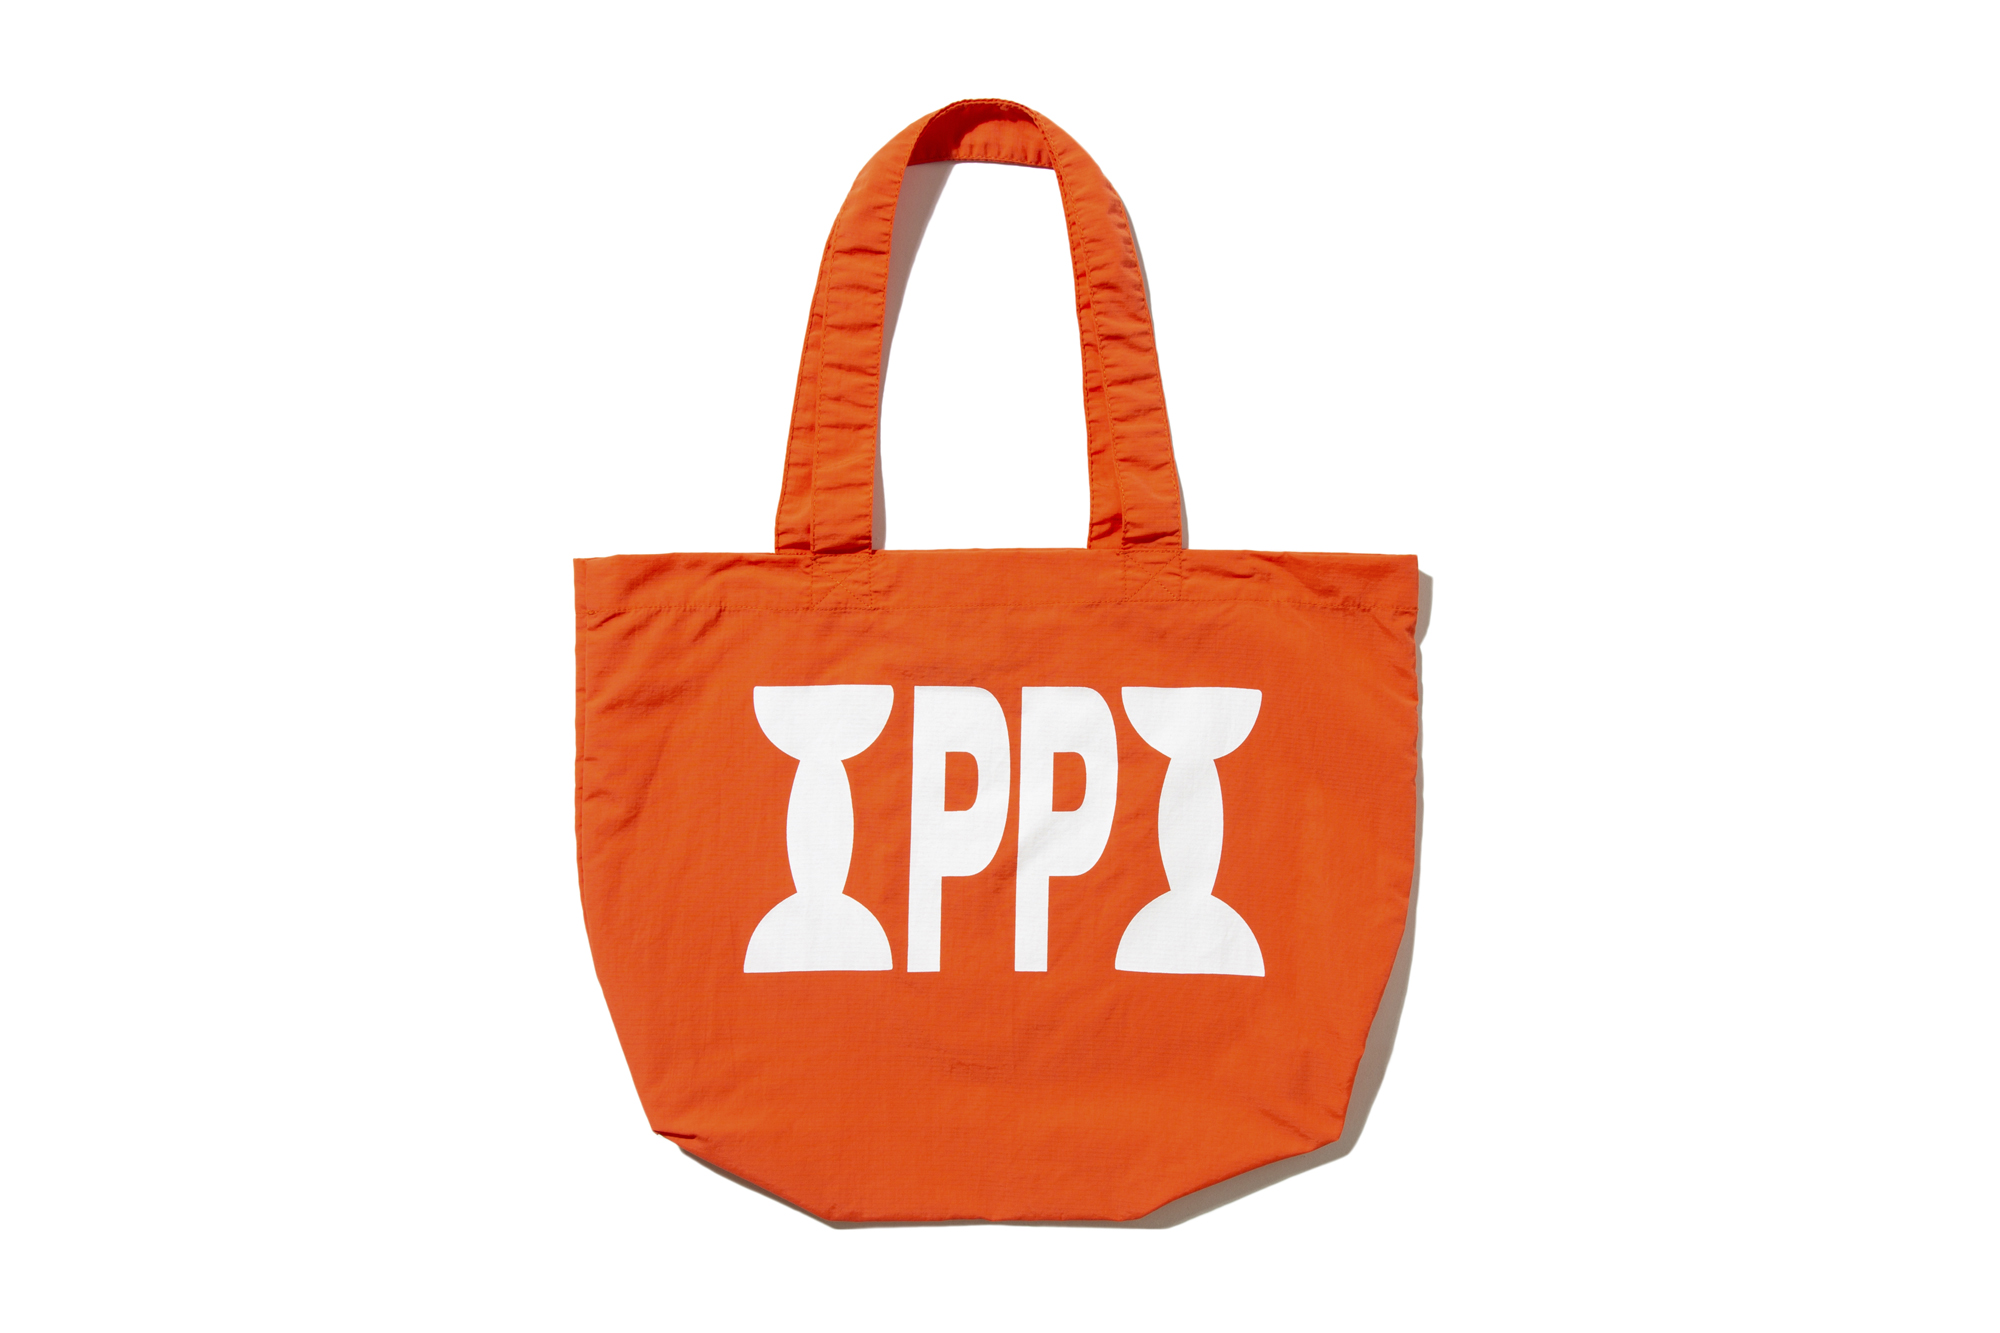 pp-pillar-tote-bag_p1